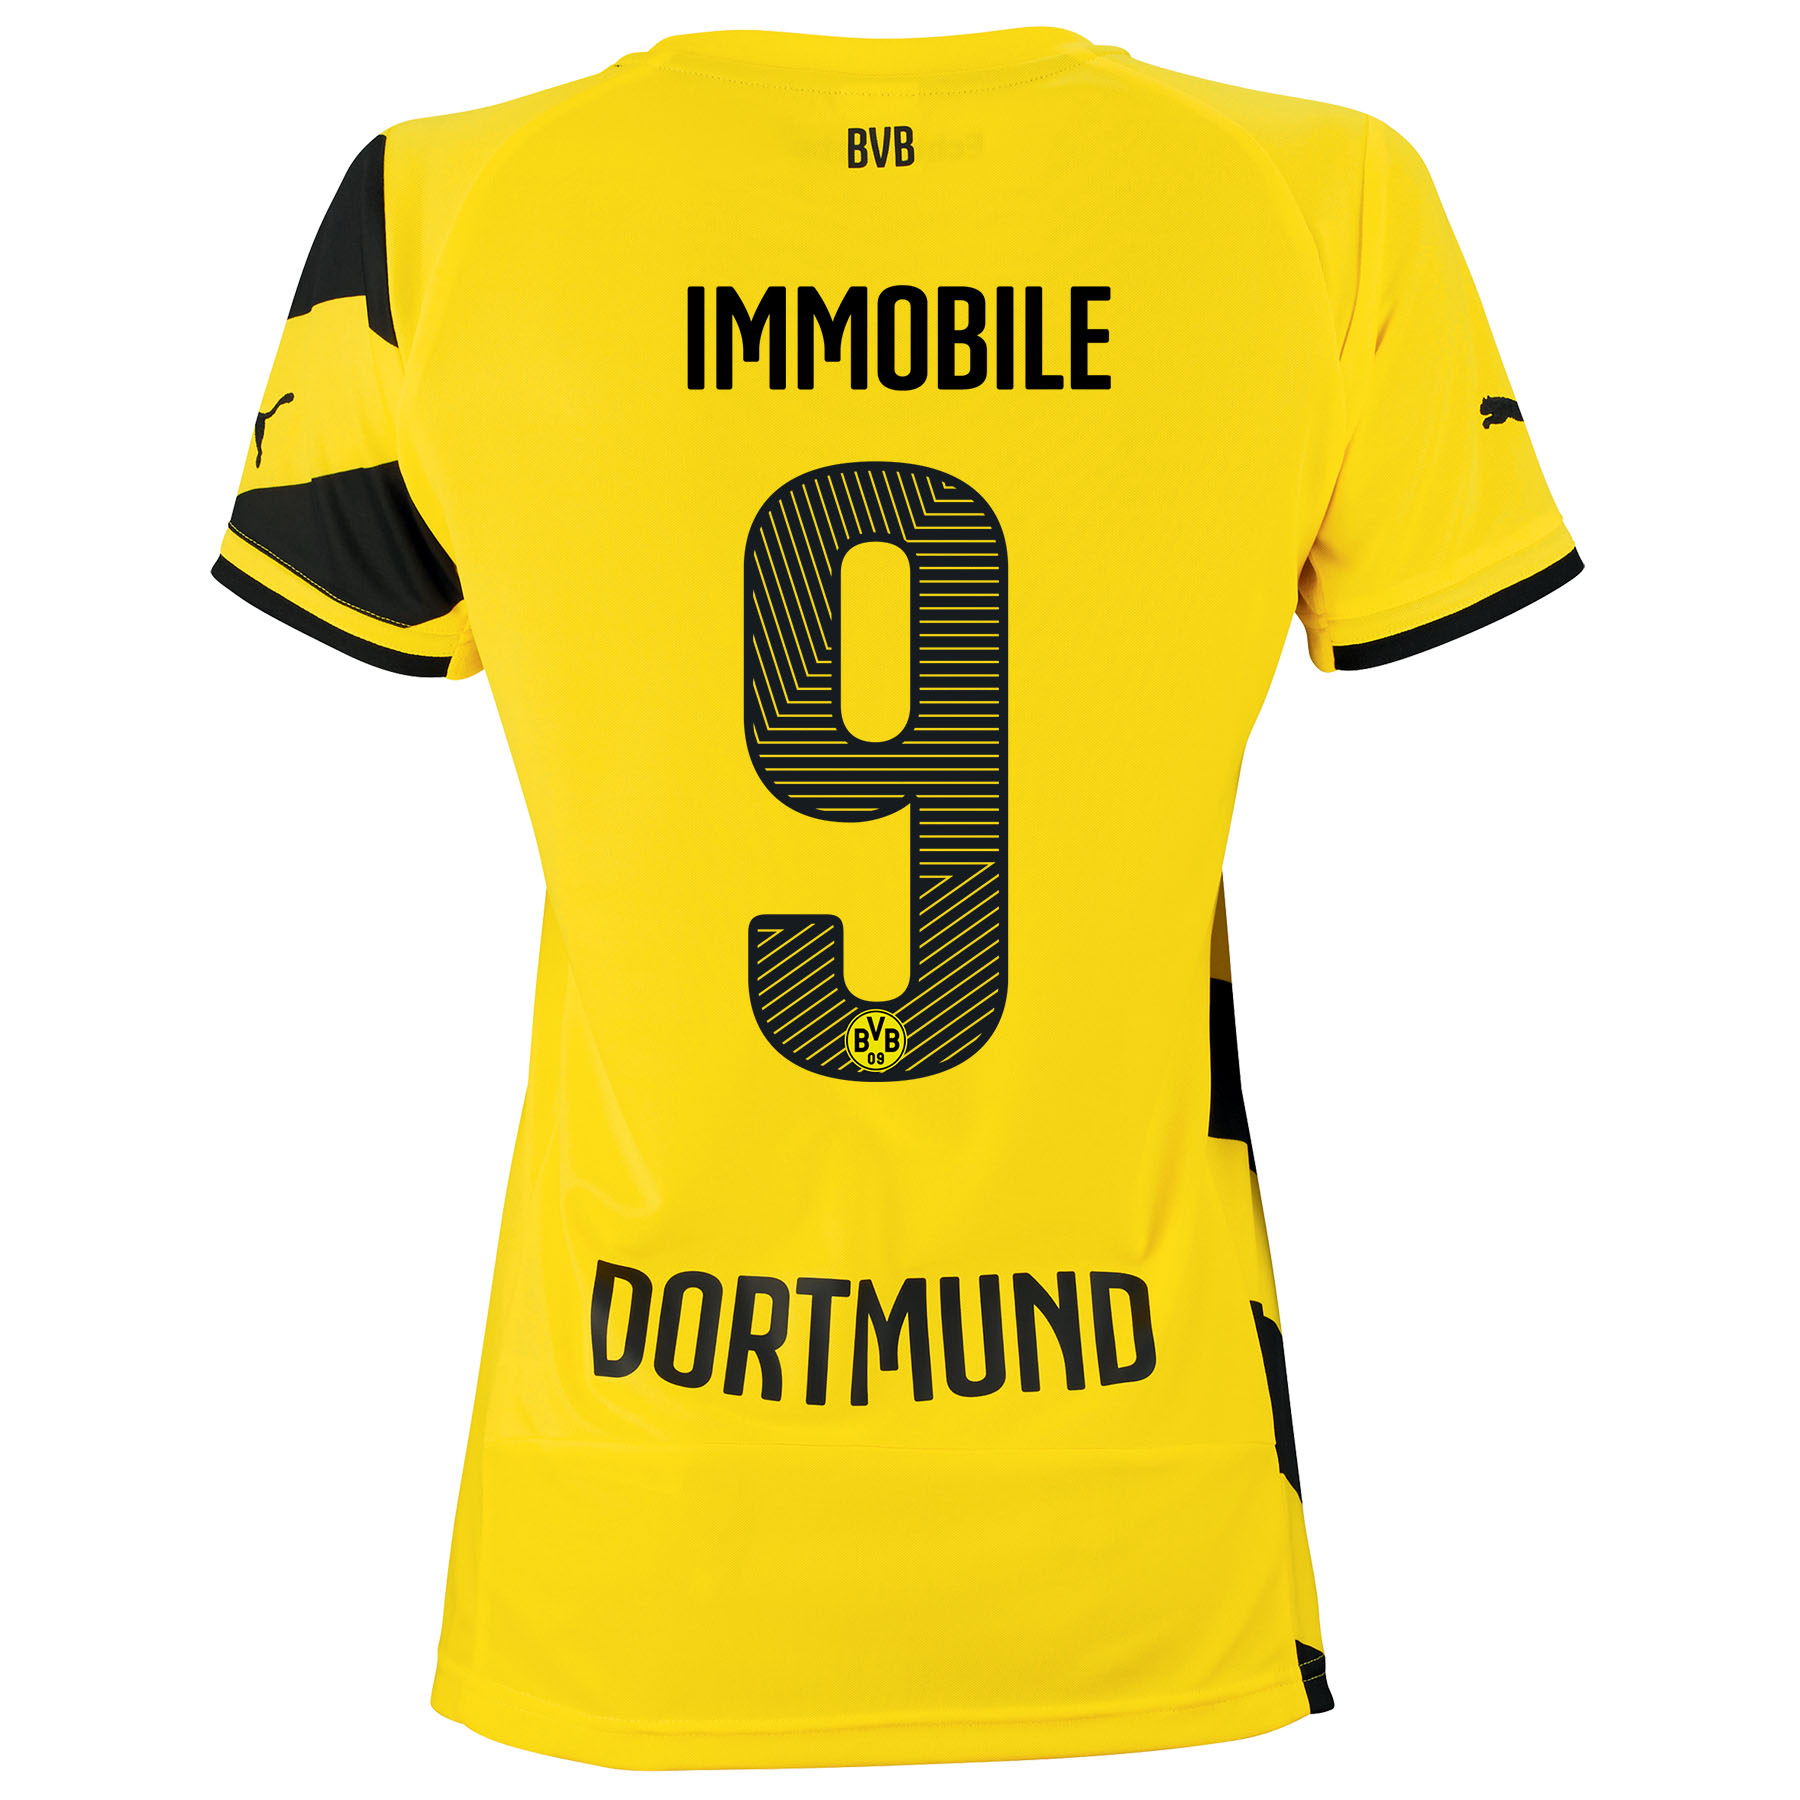 BVB Home Shirt 2014/15 - Womens with Ciro Immobile 9 printing